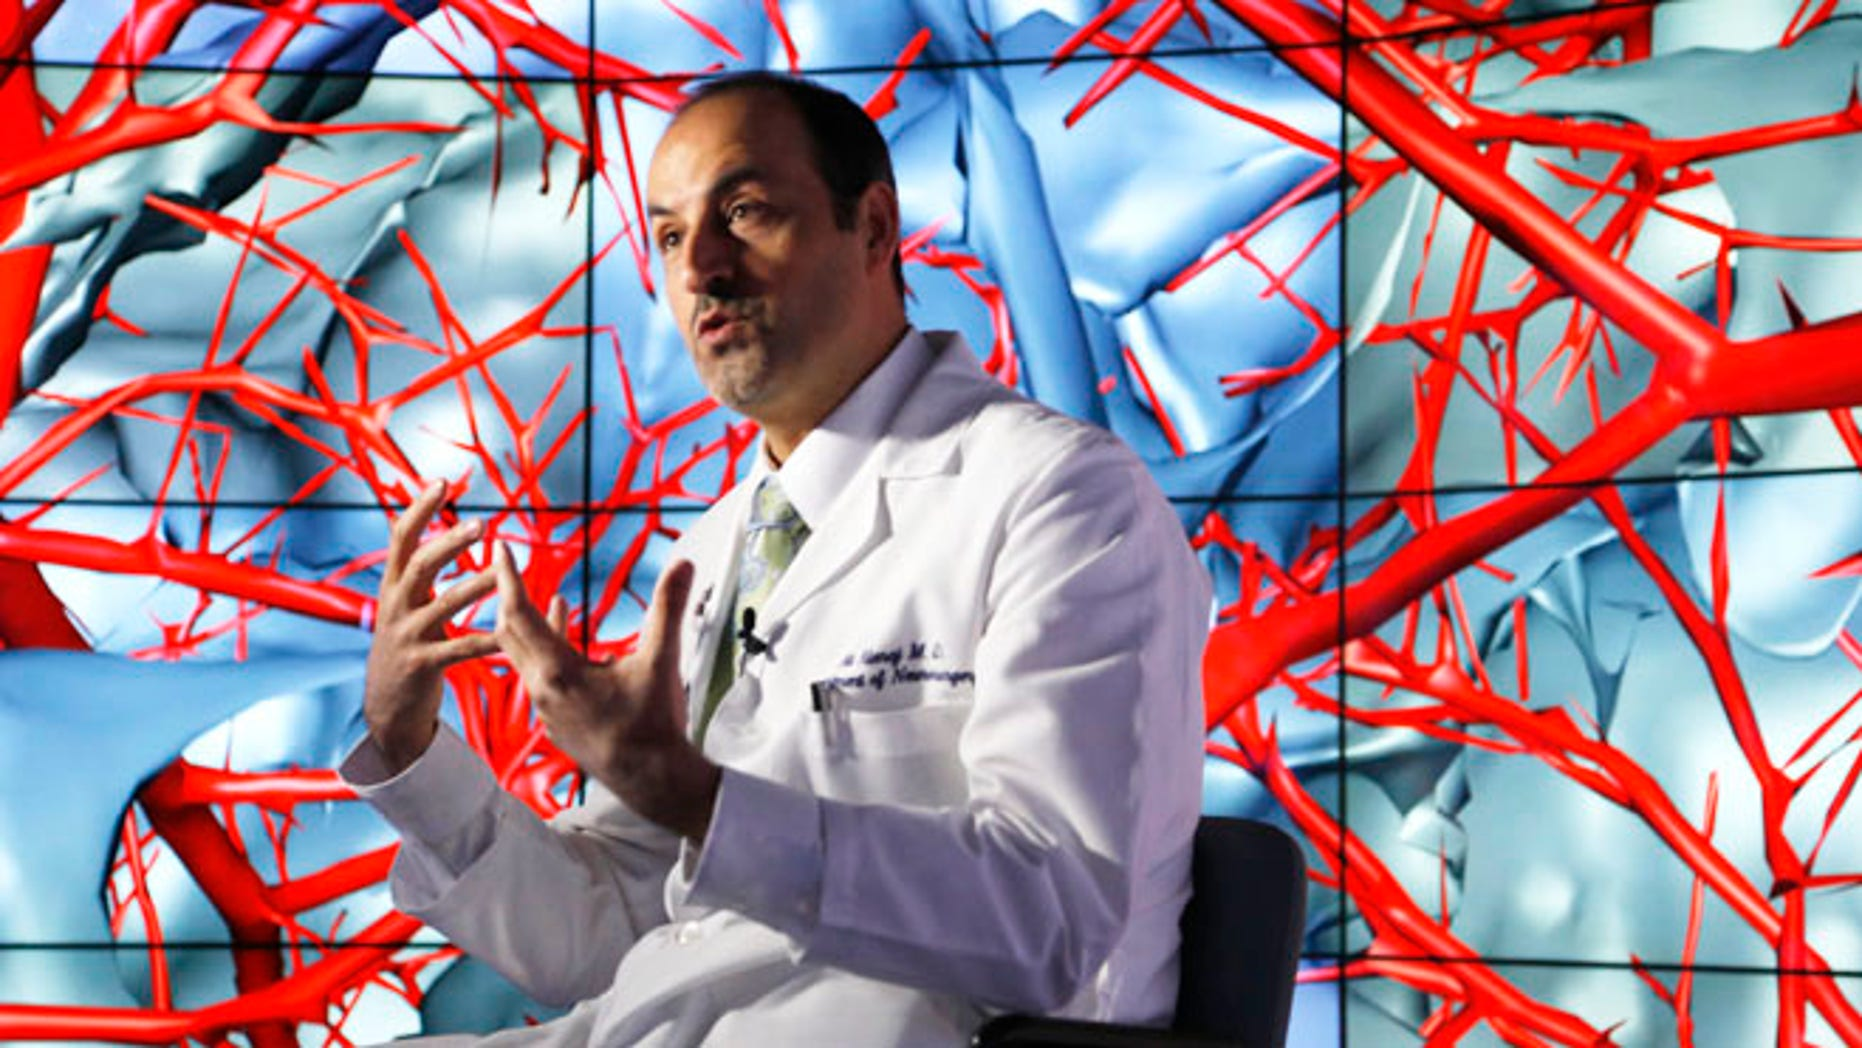 Jan. 24, 2013: Brain surgeon Ali Alaraj talks about the first time he viewed the brain using the CAVE2 -- a system of 72 stereoscopic LCD panels seen behind him. An $85-billion across-the-board slash to funding may affect such advanced scientific research.